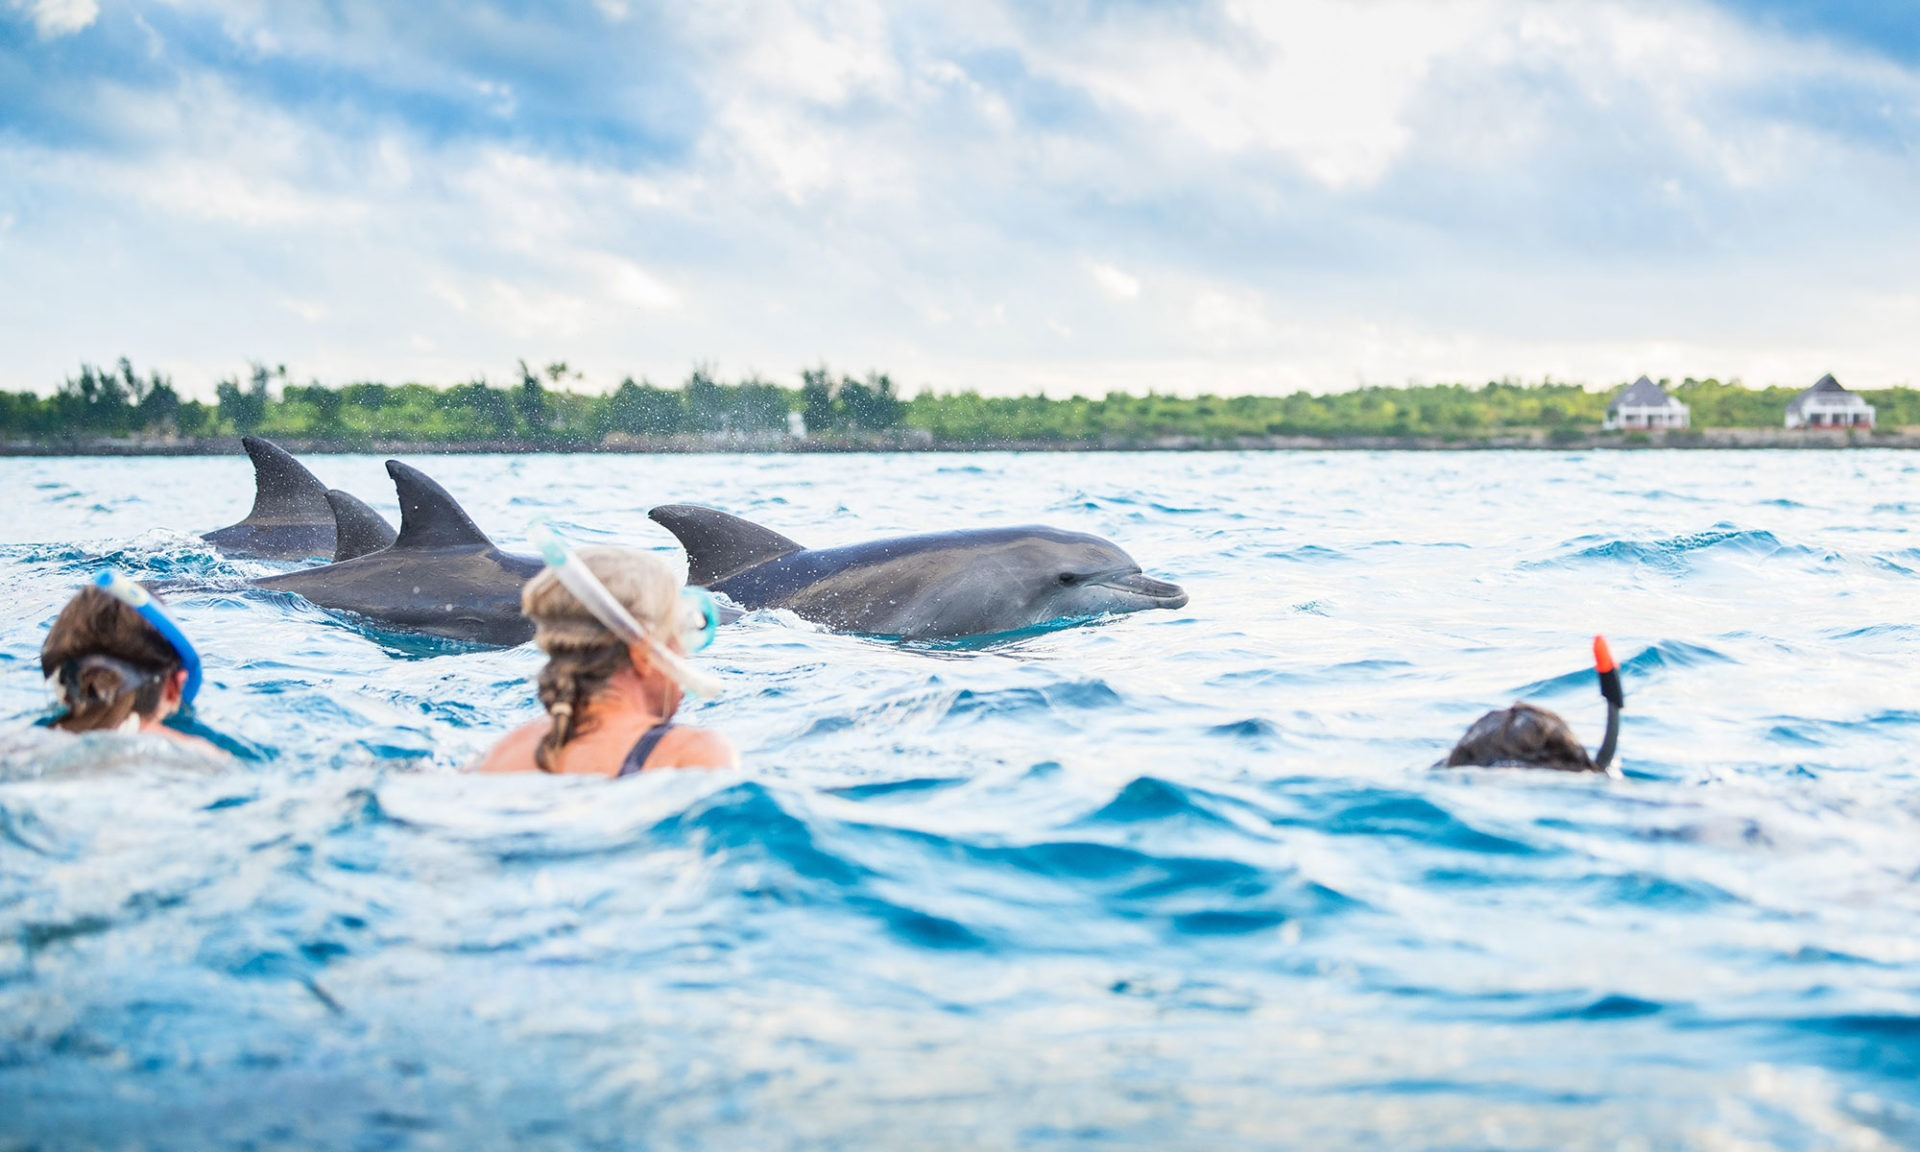 Dolphin-and-Whale-watching-Activities-in-Zanzibar